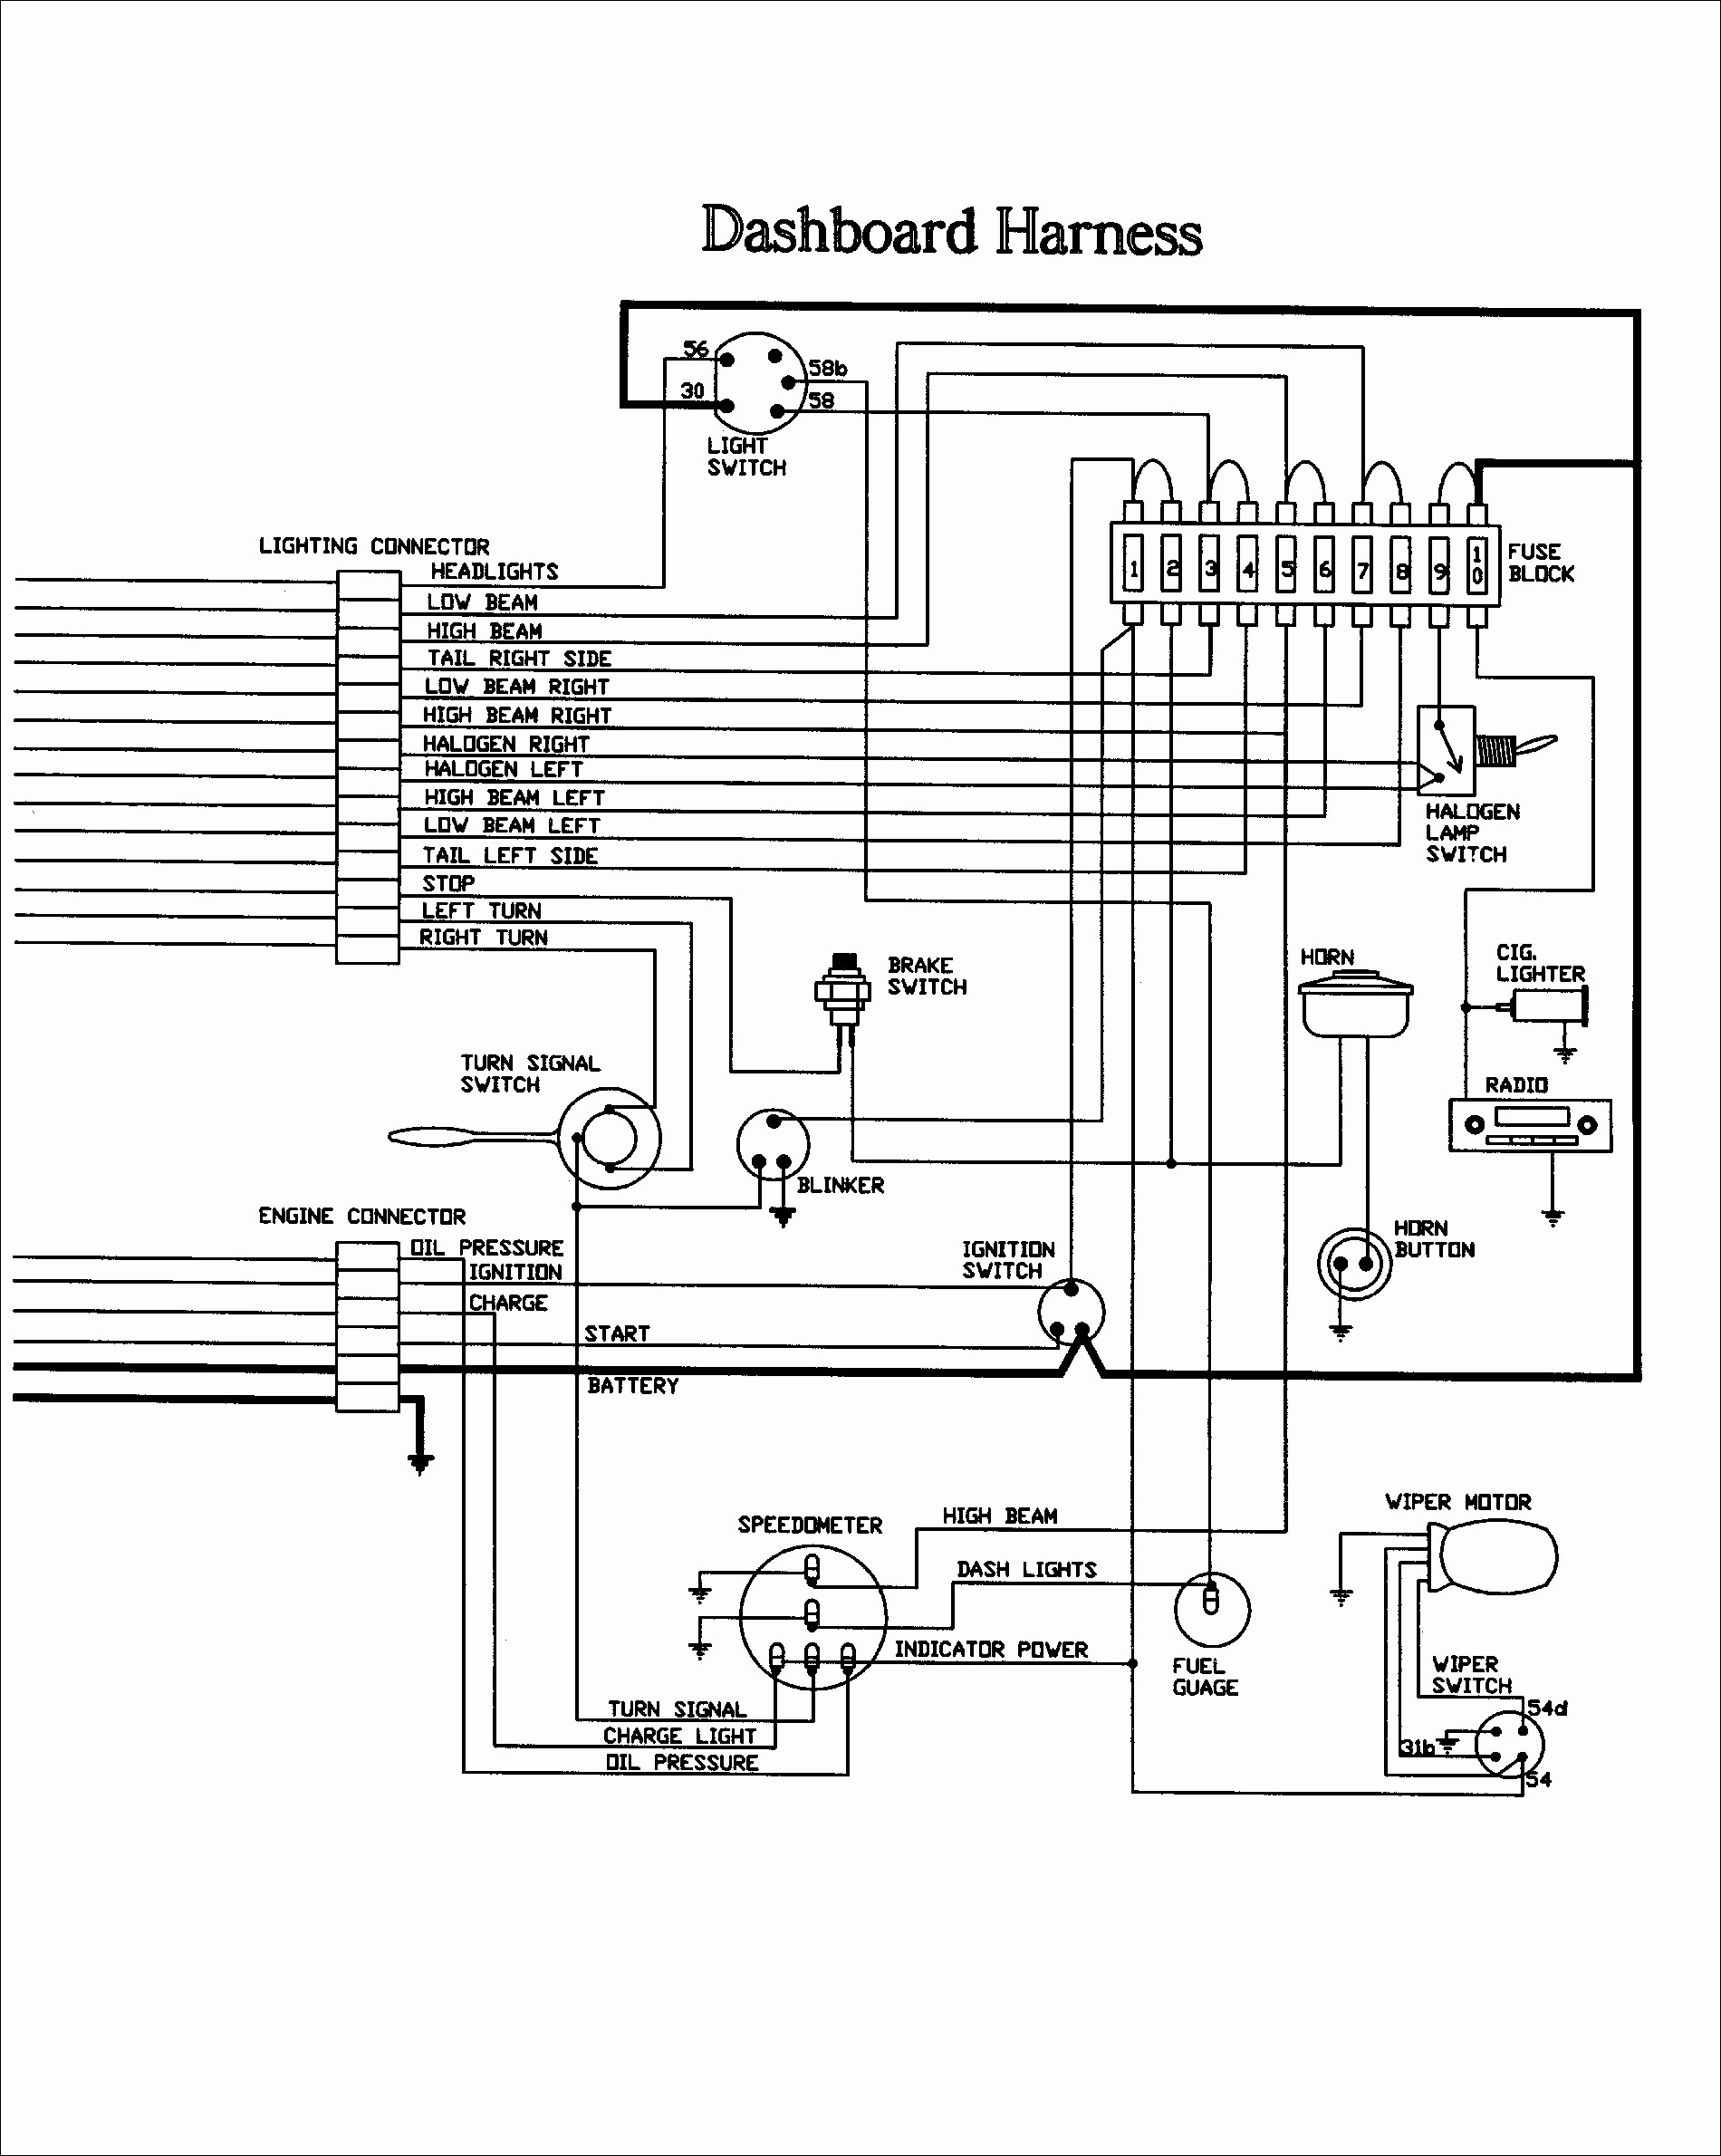 Western Plow Controller Wiring Diagram For 2970 16 - Wiring Diagrams - Western Plows Wiring Diagram